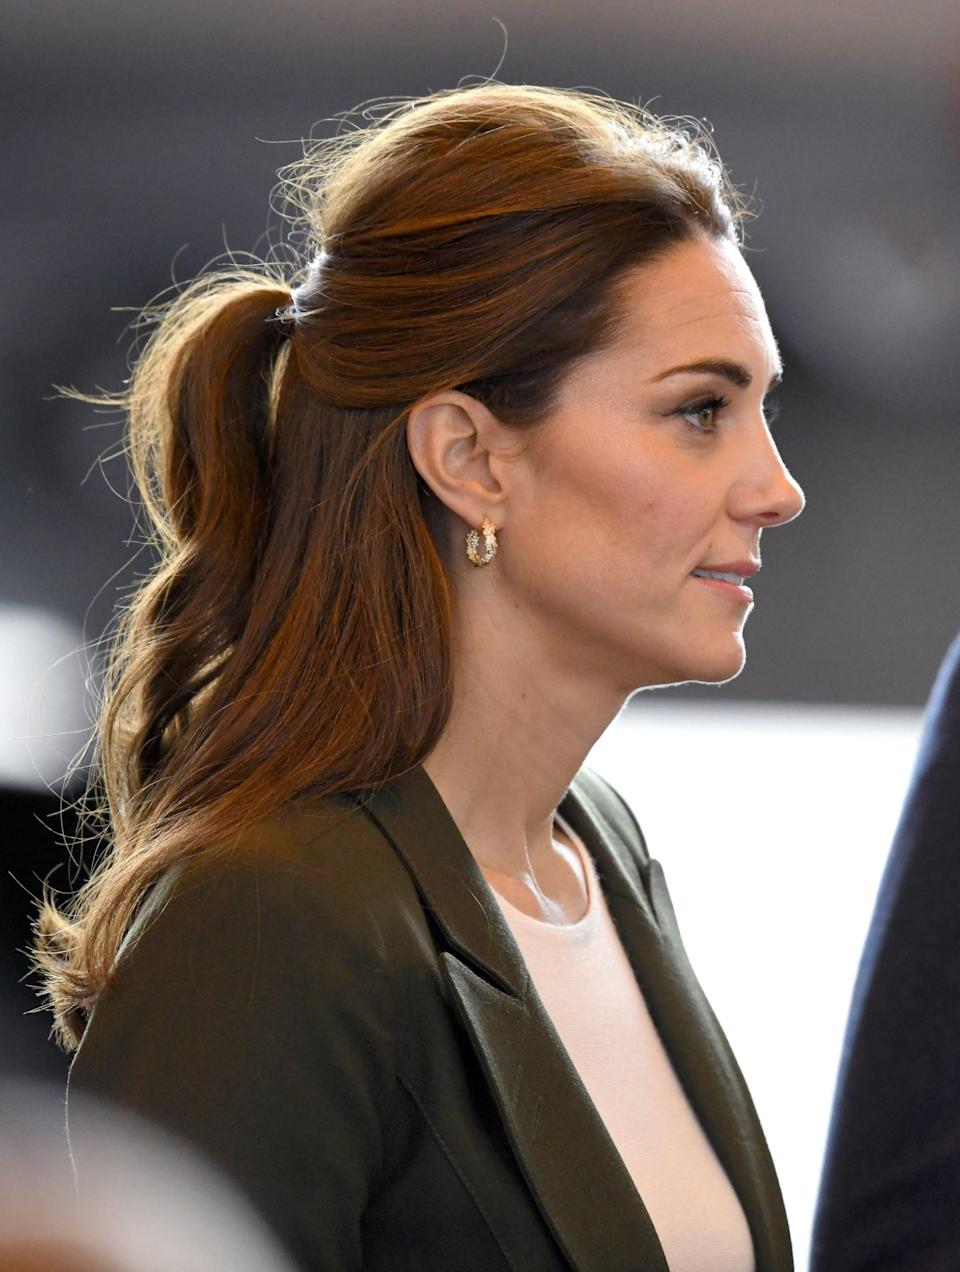 <p>For a royal visit in Cyprus, Middleton wore her hair in a half-up ponytail. And while the style is less pristine and polished than we're use to seeing from the Duchess, it's still clear she's had a smooth blowout beforehand. </p>